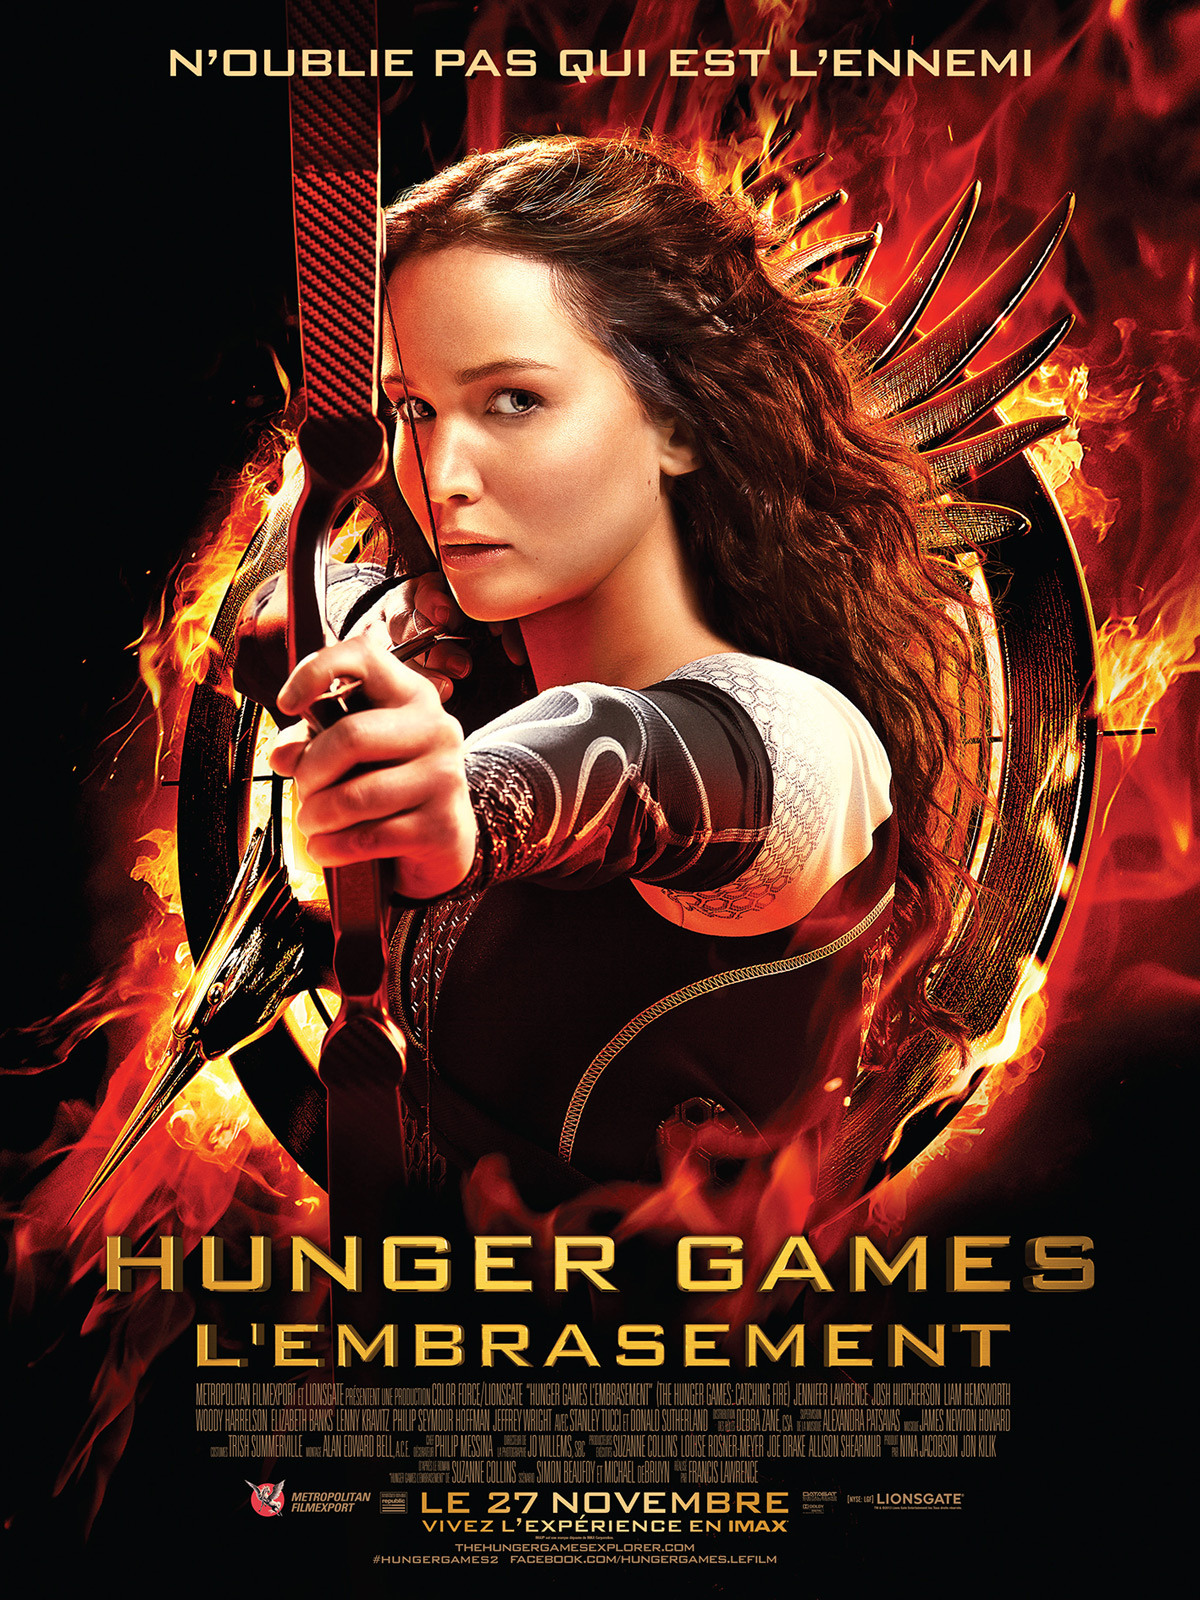 Hunger Games – L'embrasement [DVDRIP.MD] dvdrip